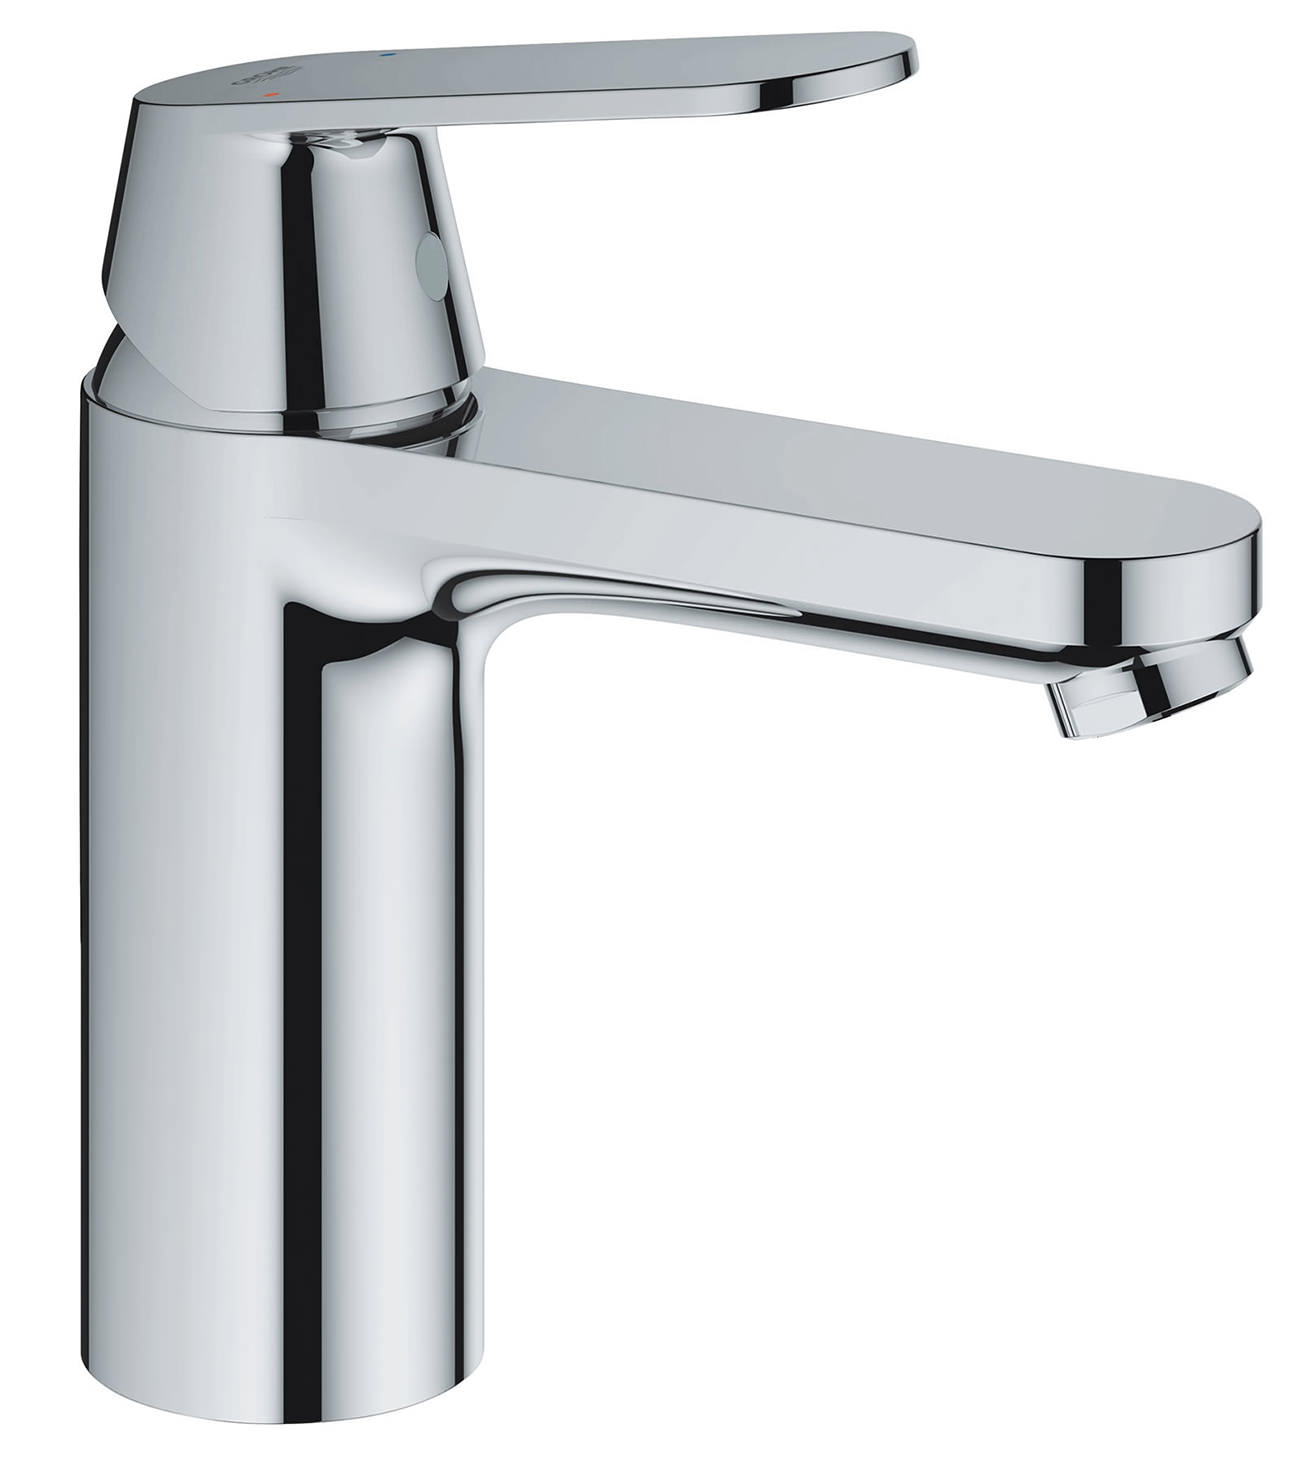 grohe eurosmart cosmopolitan chrome basin mixer tap. Black Bedroom Furniture Sets. Home Design Ideas